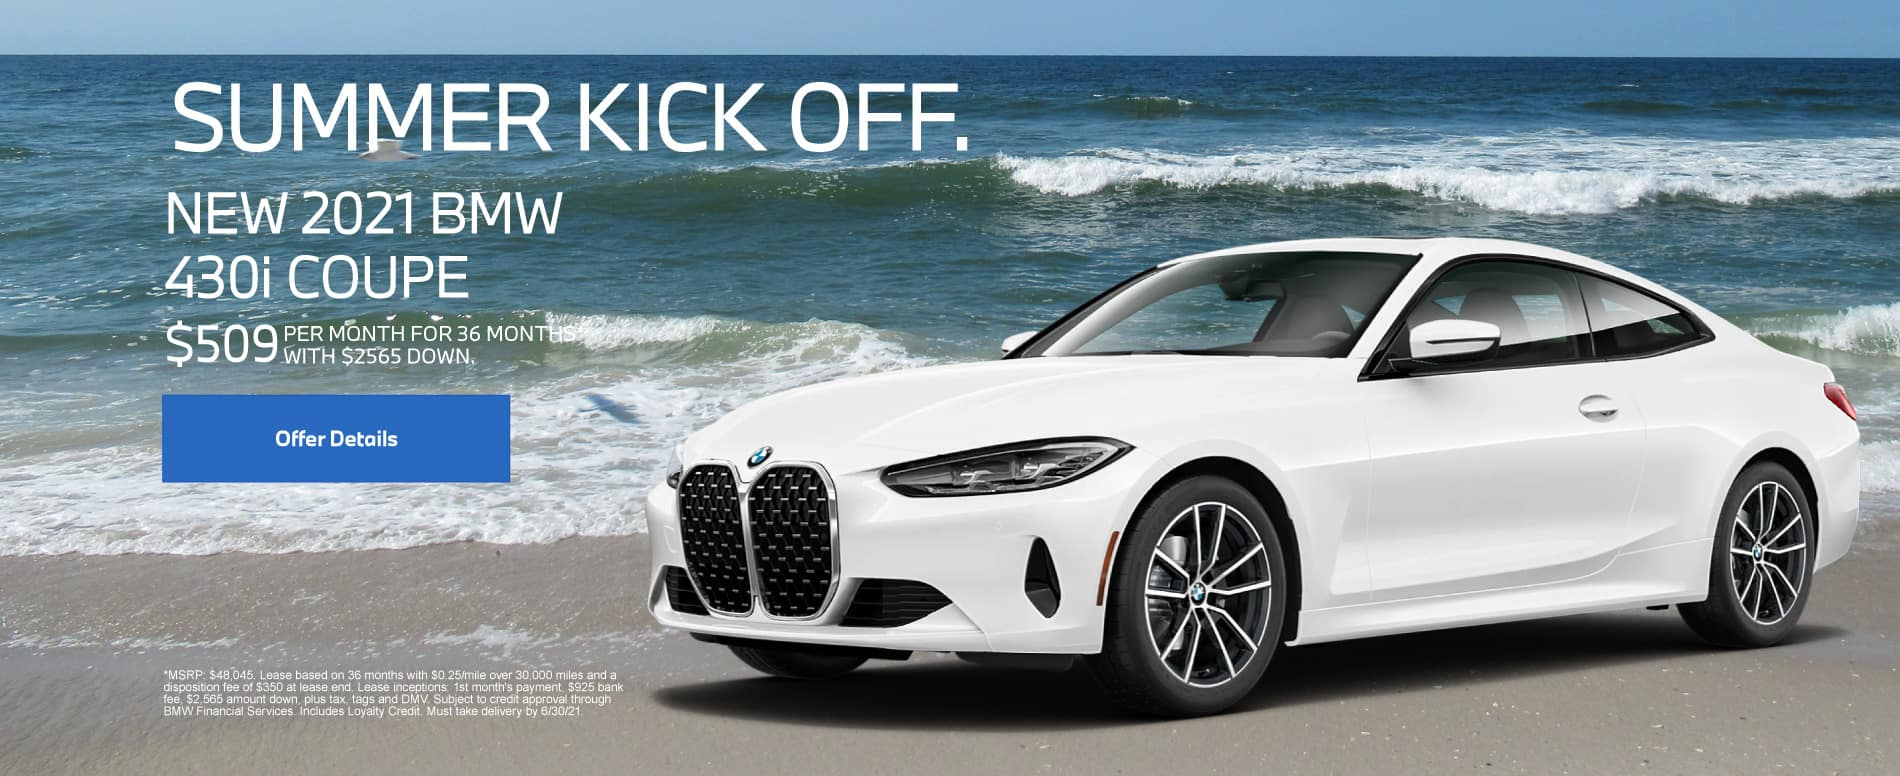 New 2021 BMW 430i Coupe - $509 per month for 36 months With $2565 down*